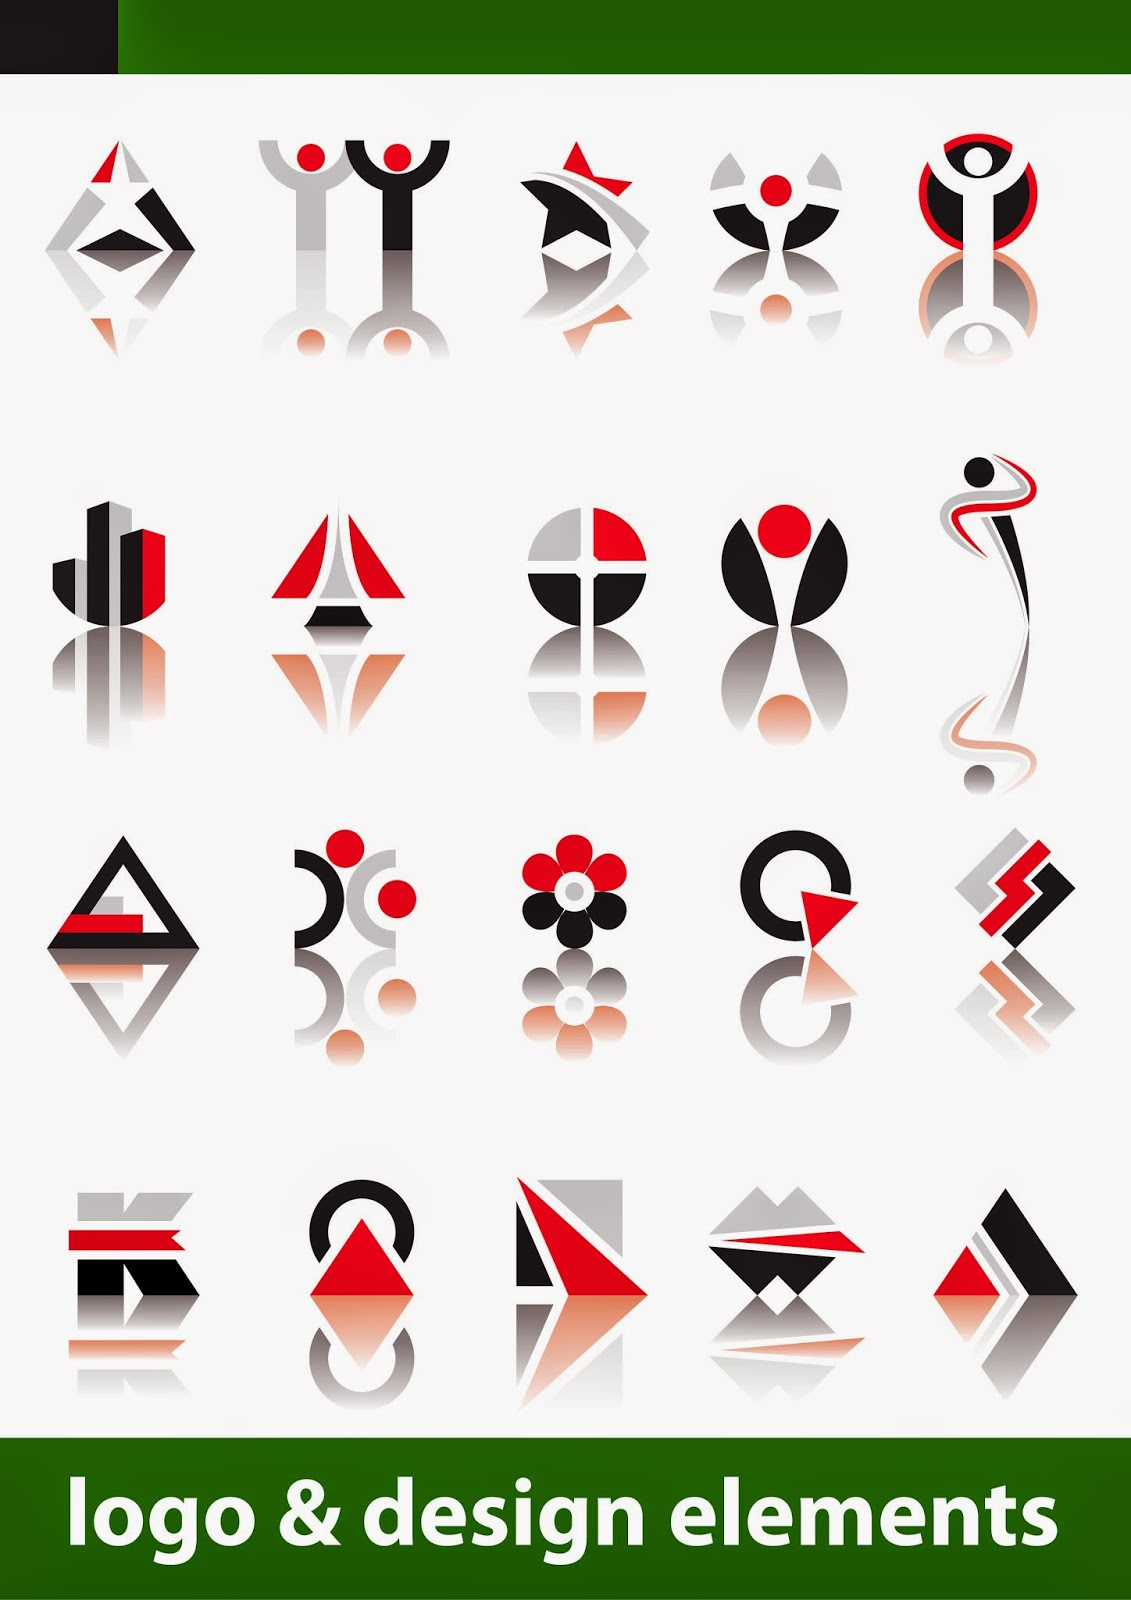 Free LOGO AND DESIGN ELEMENTS